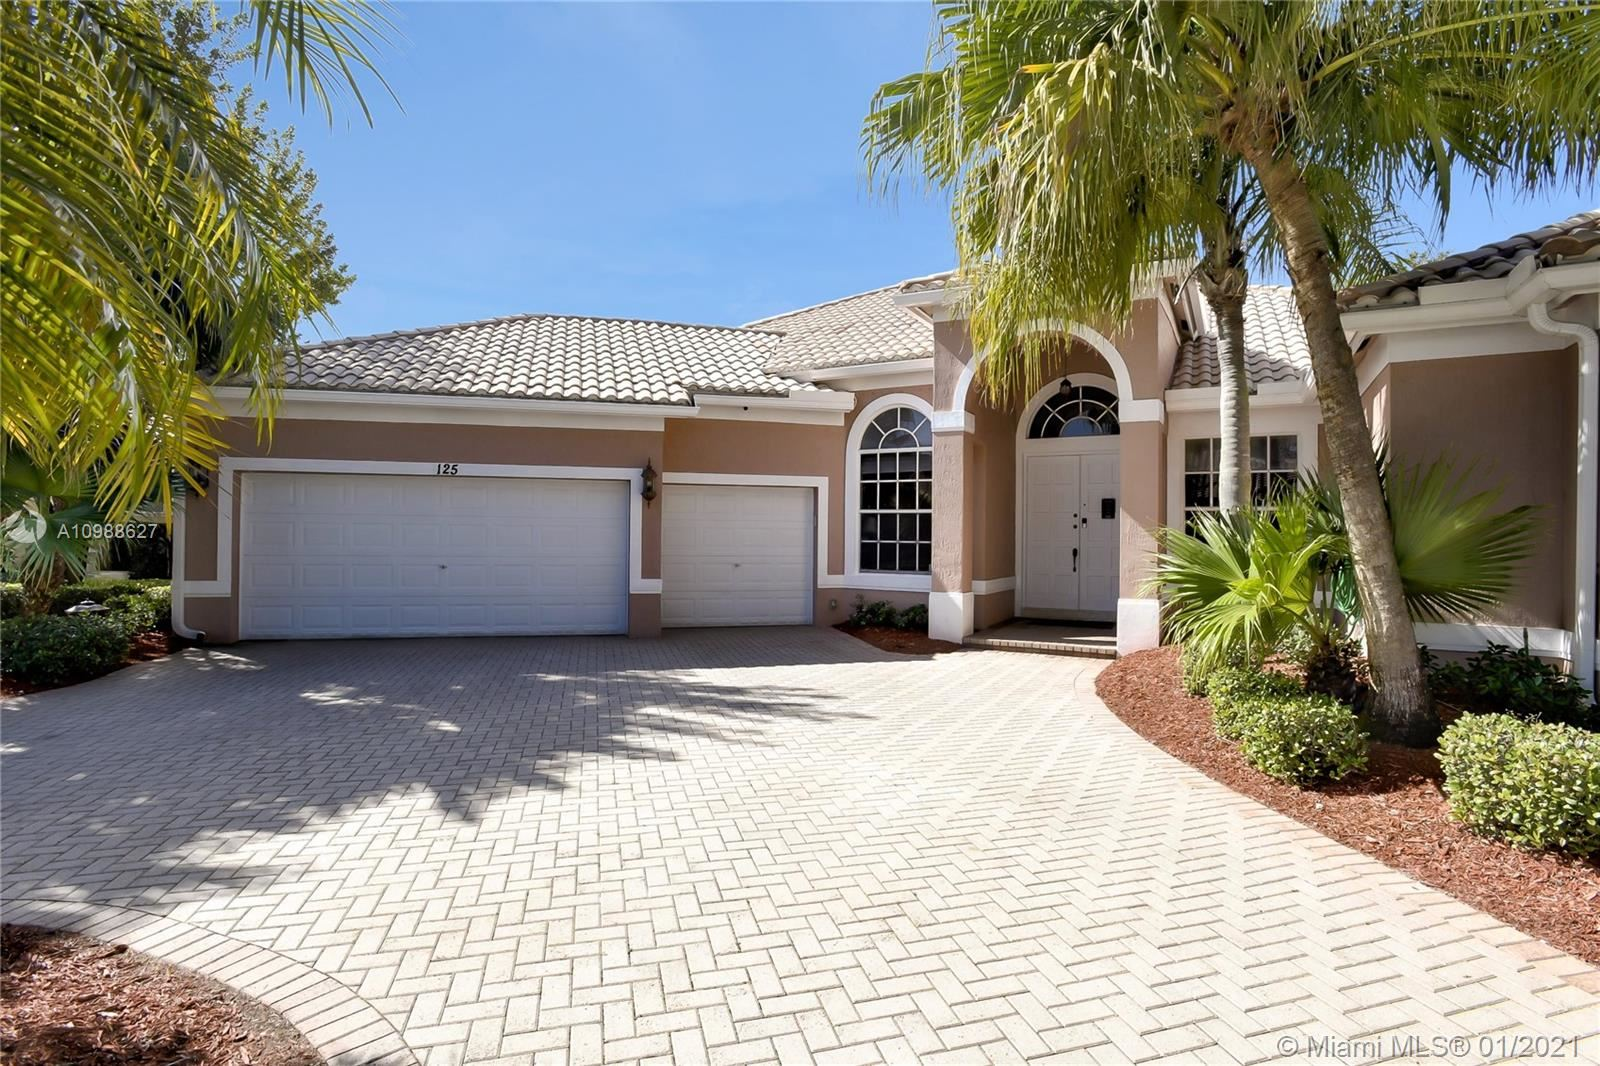 125 NW 108th Way, Plantation, FL 33324 - #: A10988627